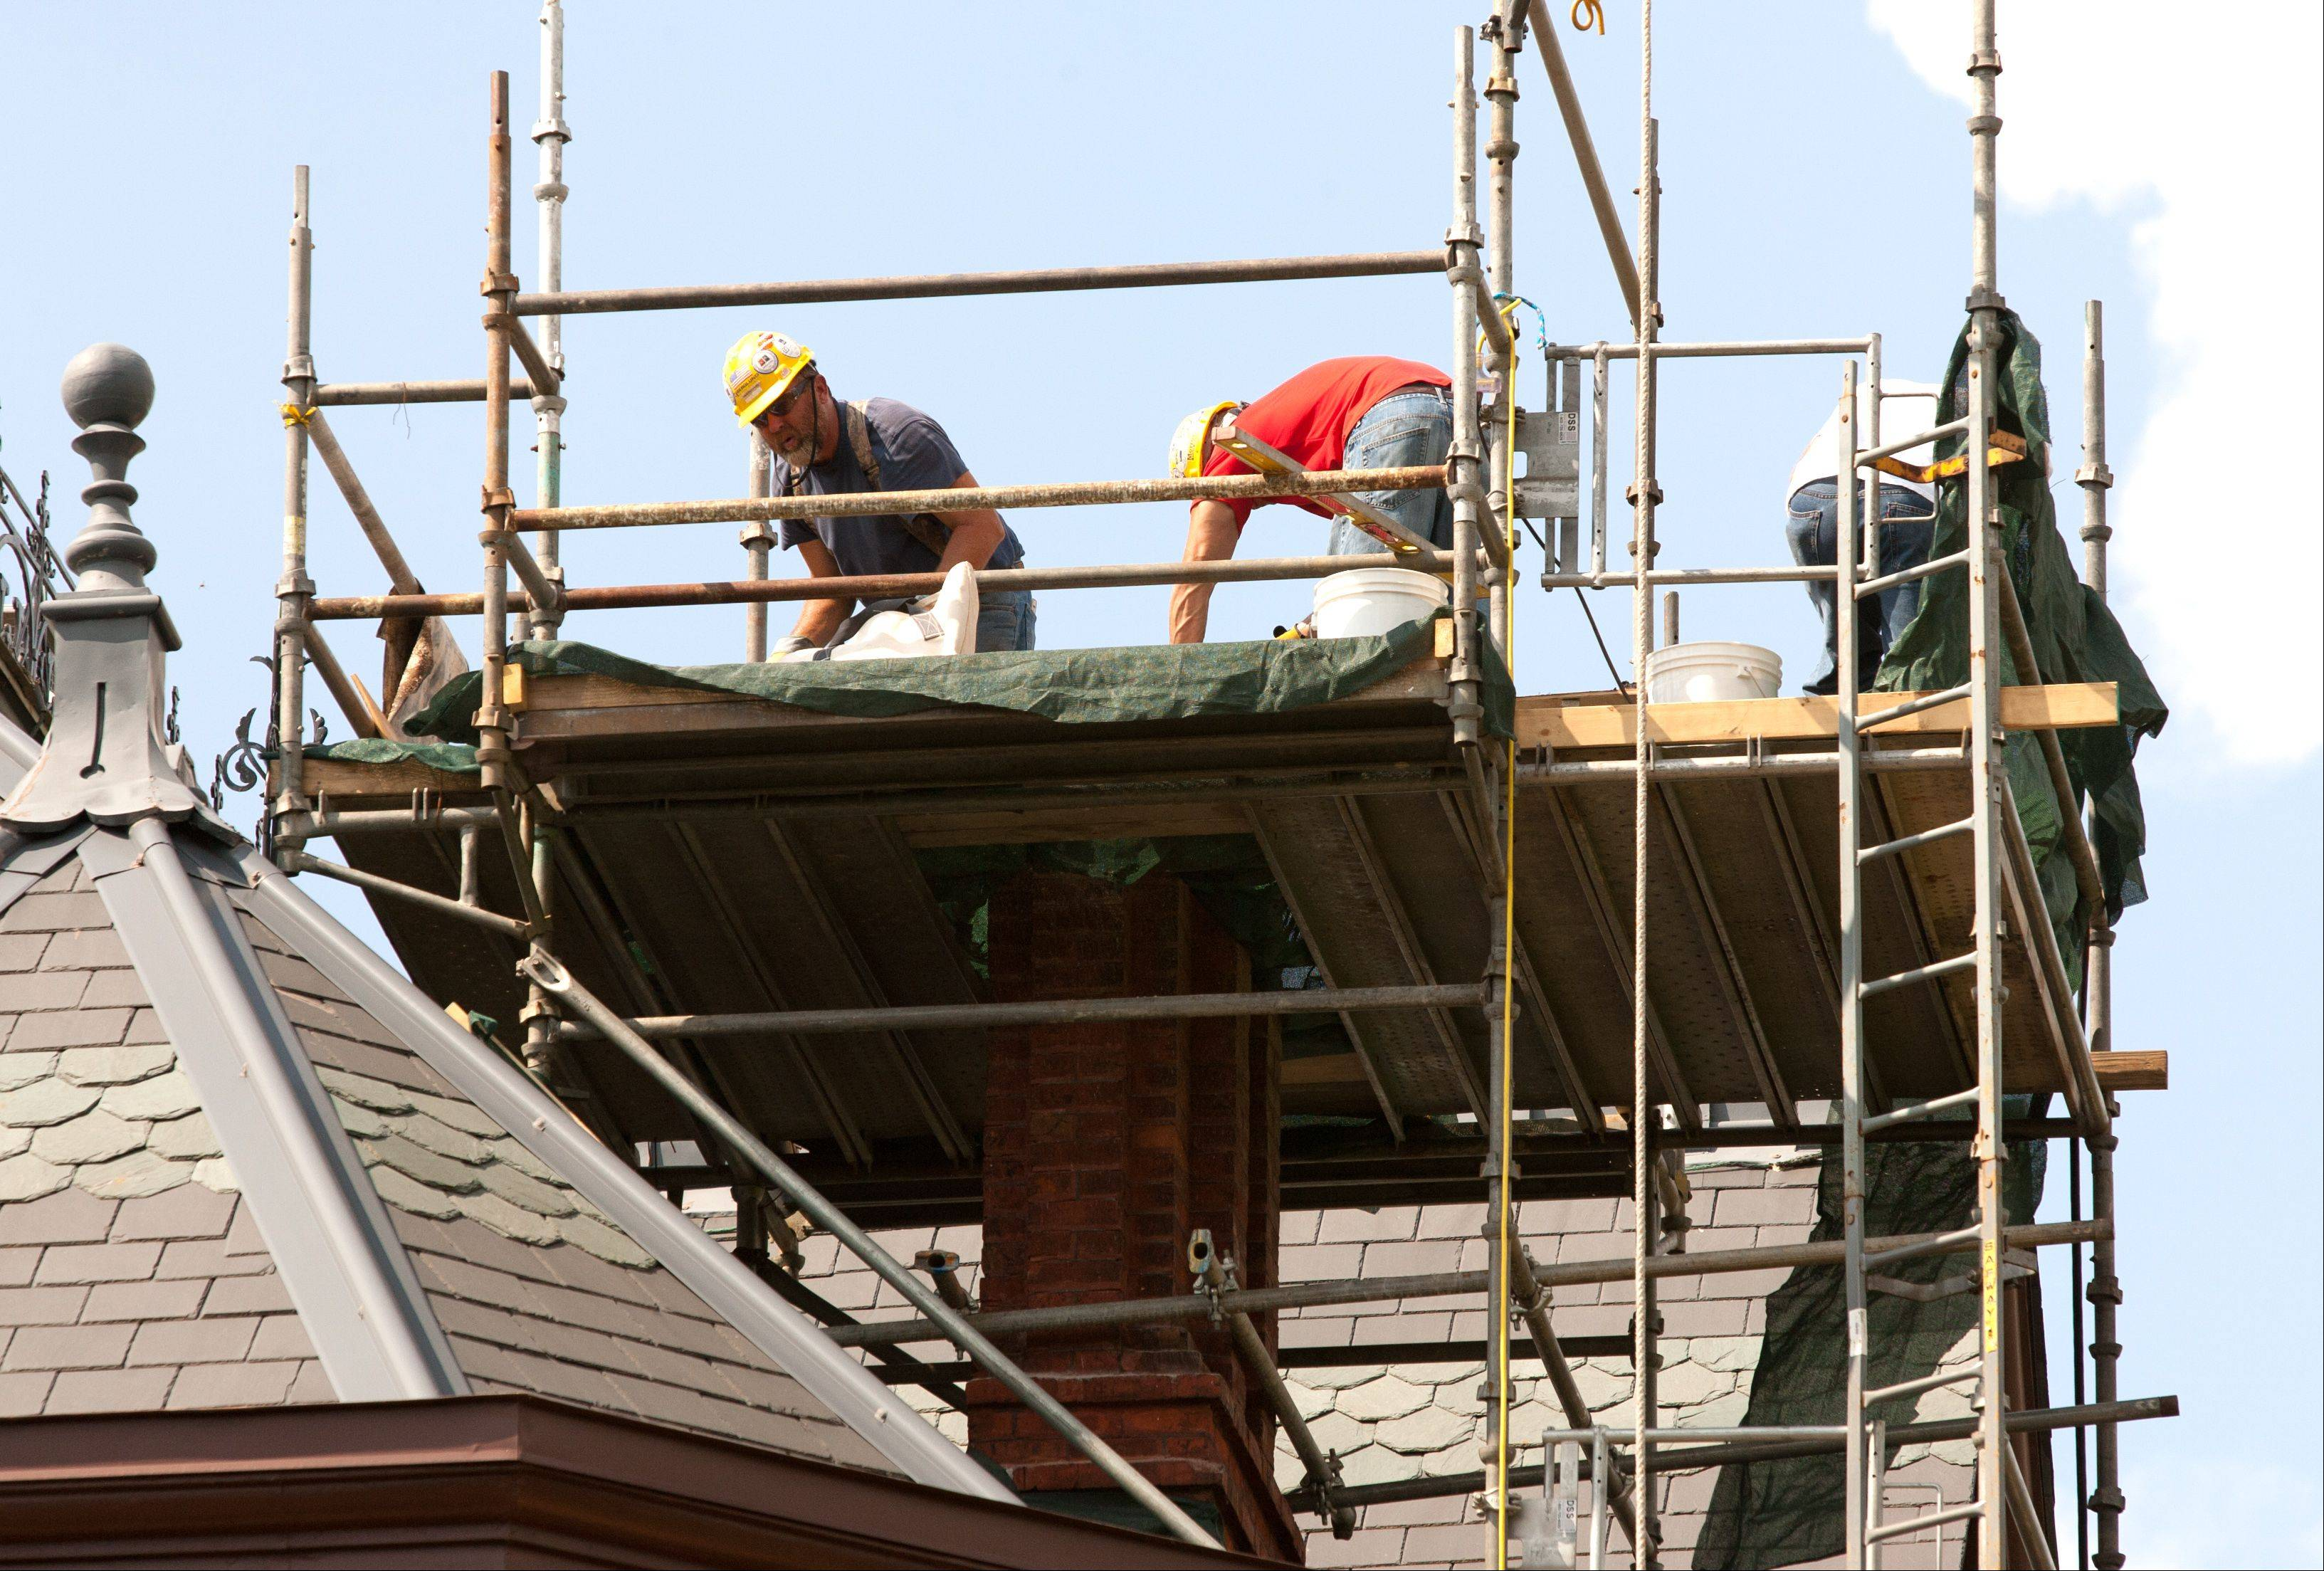 Workers from Berglund Construction of Chicago restore one of two tall chimneys at the Martin Mitchell Mansion on the grounds of Naper Settlement in Naperville. The city council on Tuesday night approved a $69,125 contract for emergency chimney work at the historic building.